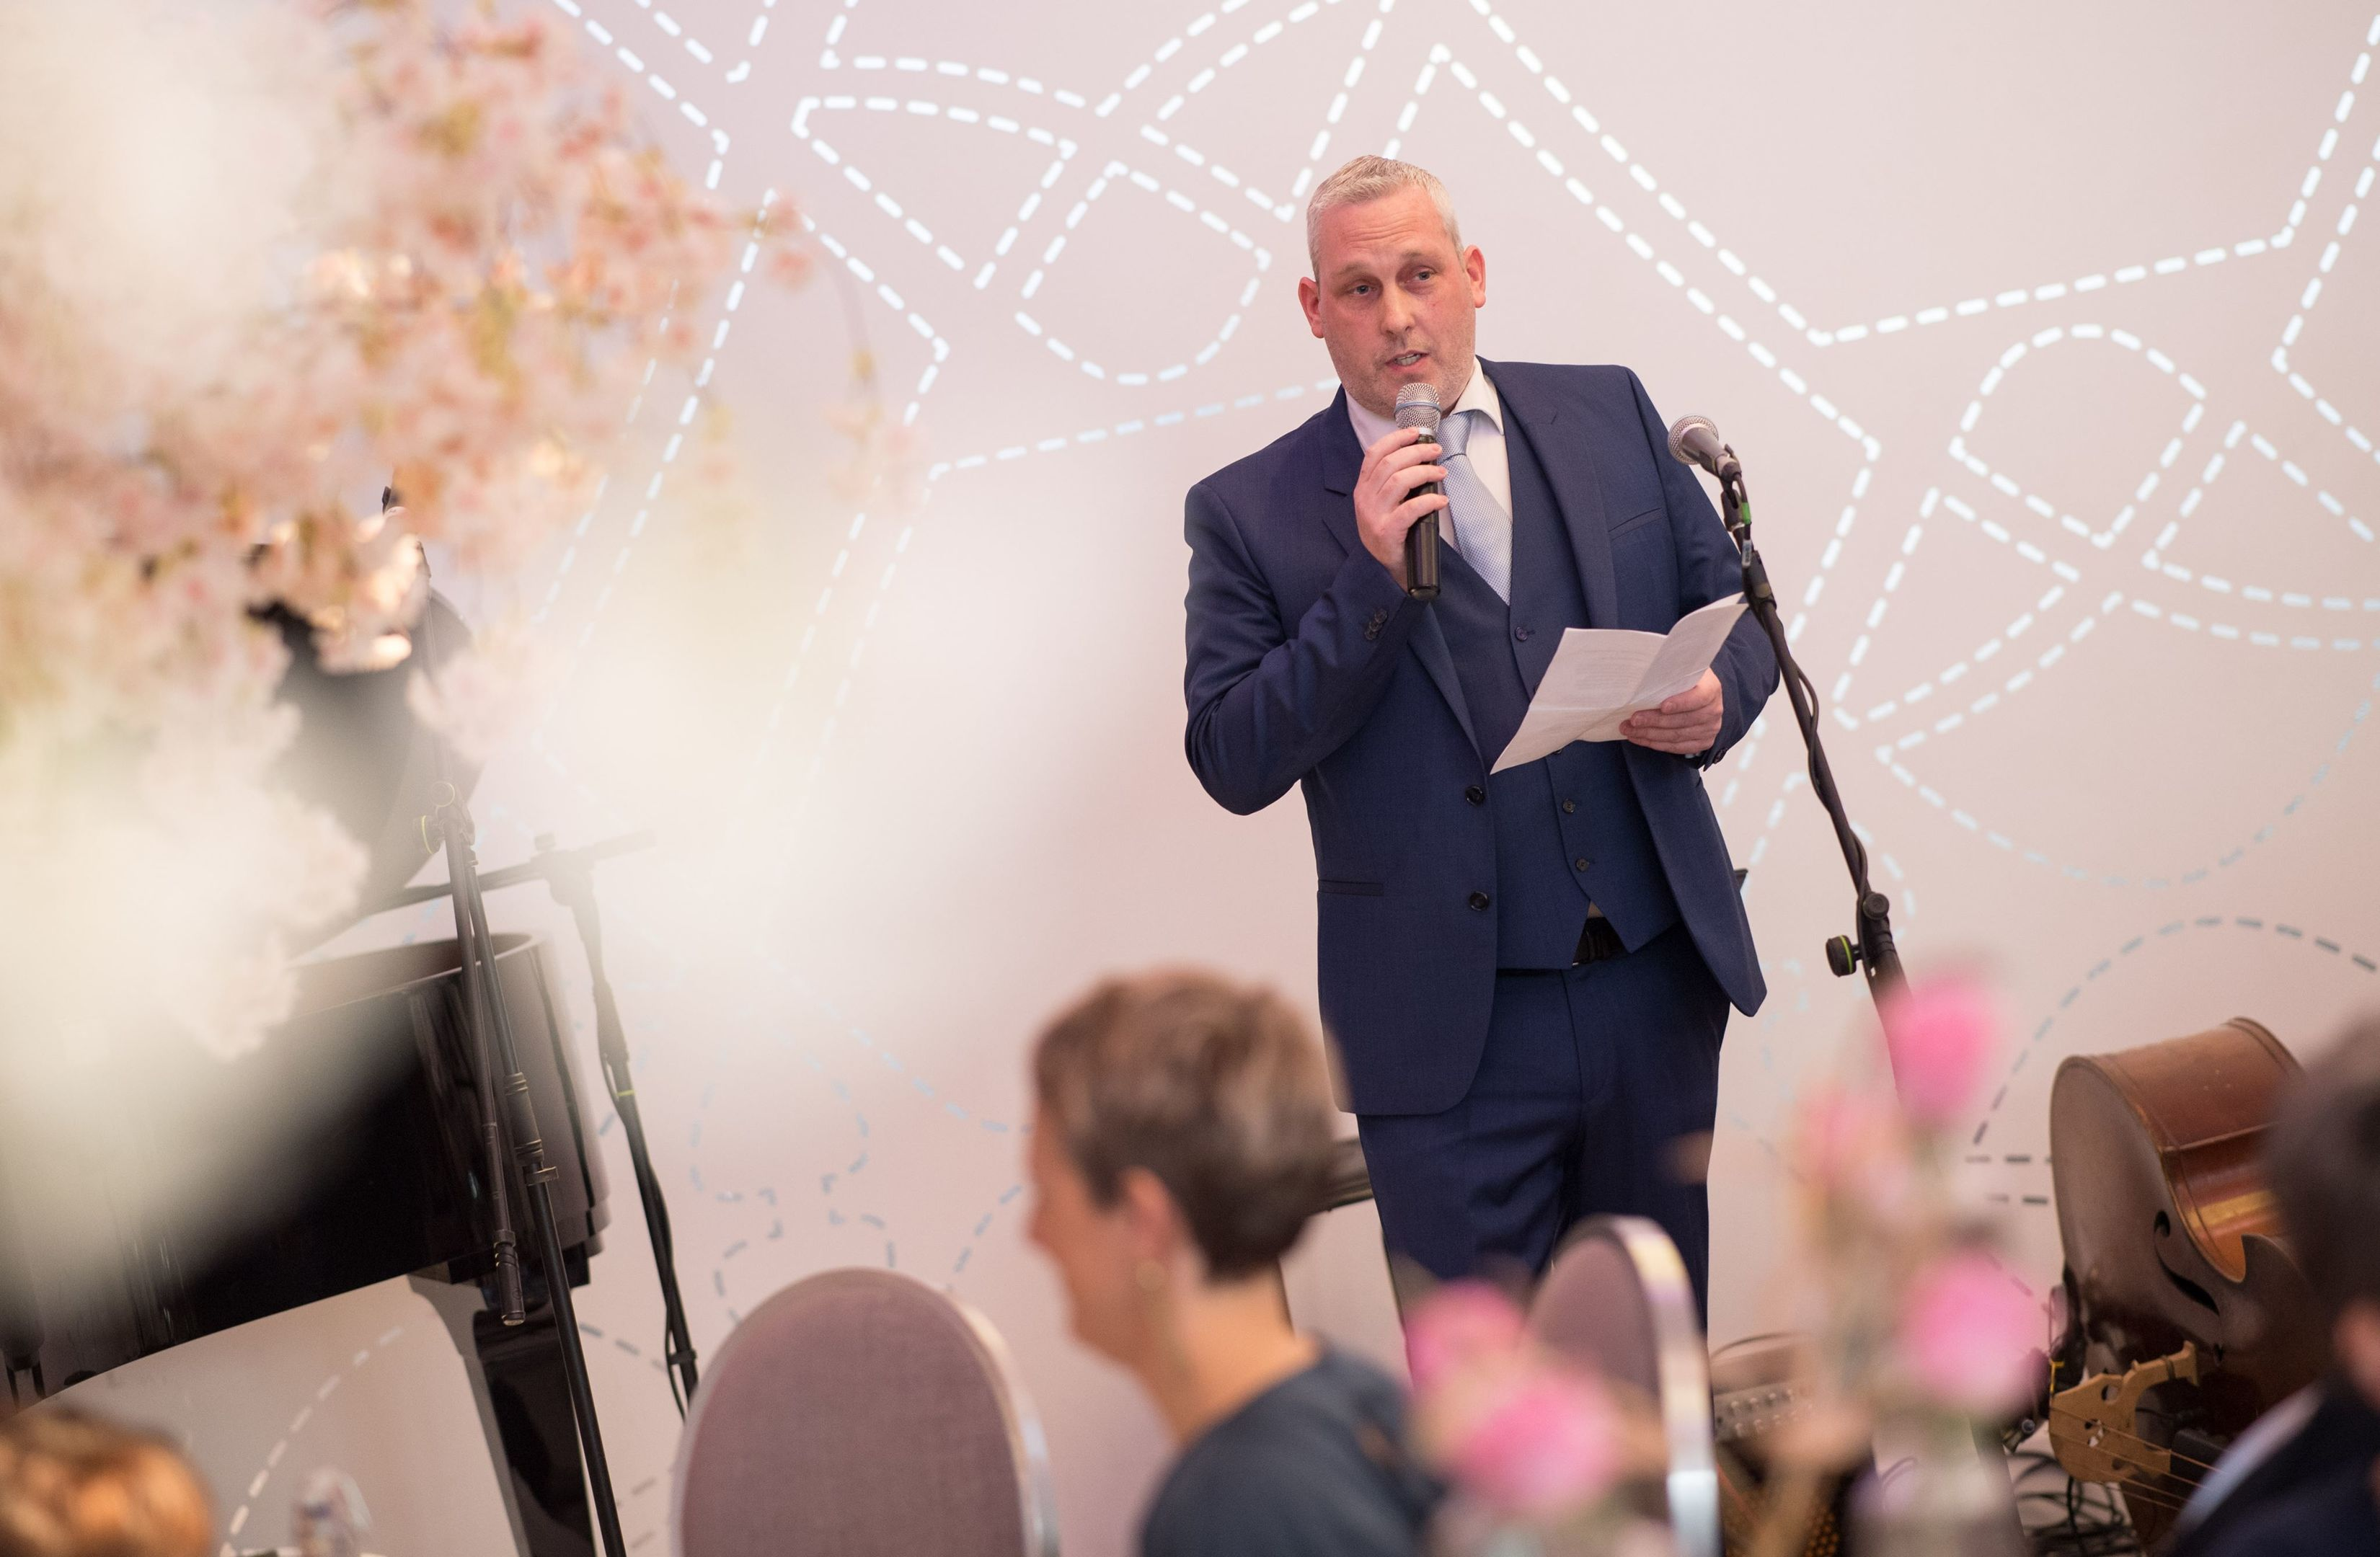 Graham Wood addressing diners at the event